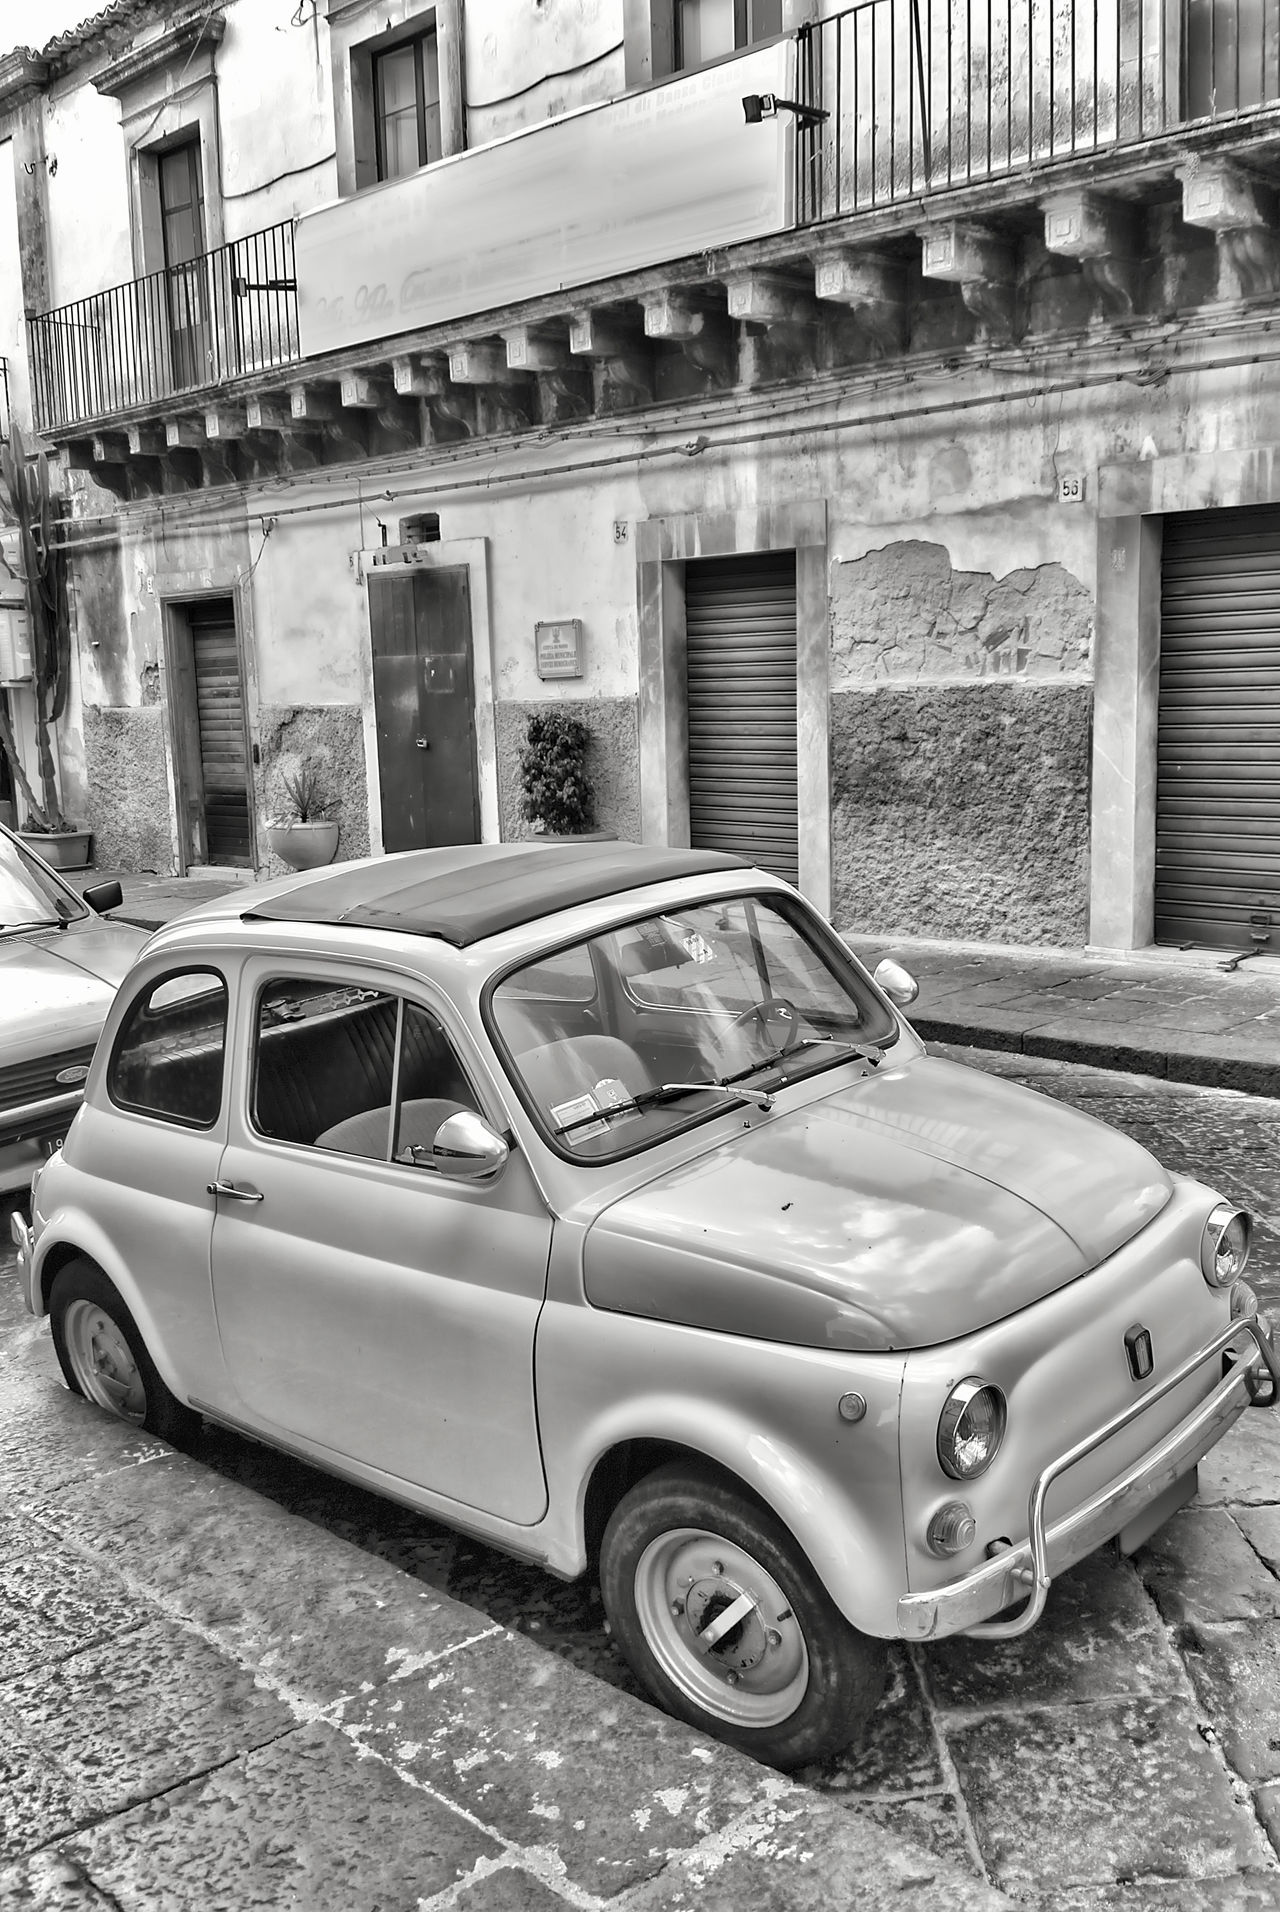 Little nice Car Architecture Auto Automobile Black And White Blackandwhite Bw_collection Car City Street Fiat Fiat500 Italy Mode Of Transport Monochrome Old-fashioned Oldtimer Outdoors Parked Parking Roadside Silver  Small Car Street Transportation Travel Vintage Car